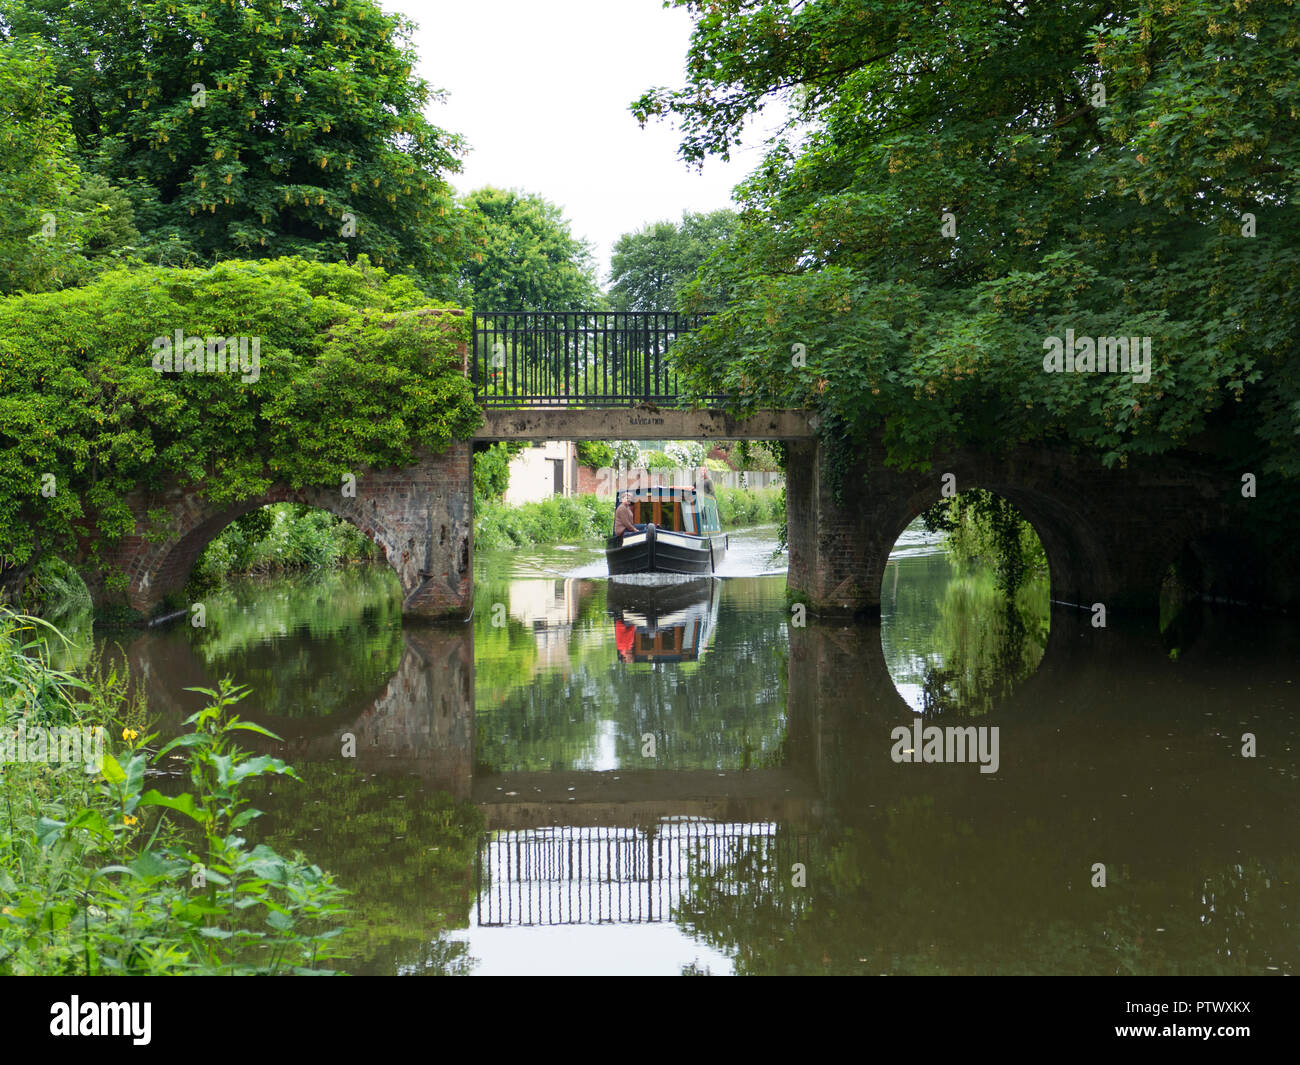 A narrow boat approaches a picturesque bridge on the River Way near Godalming in Surrey, England. - Stock Image